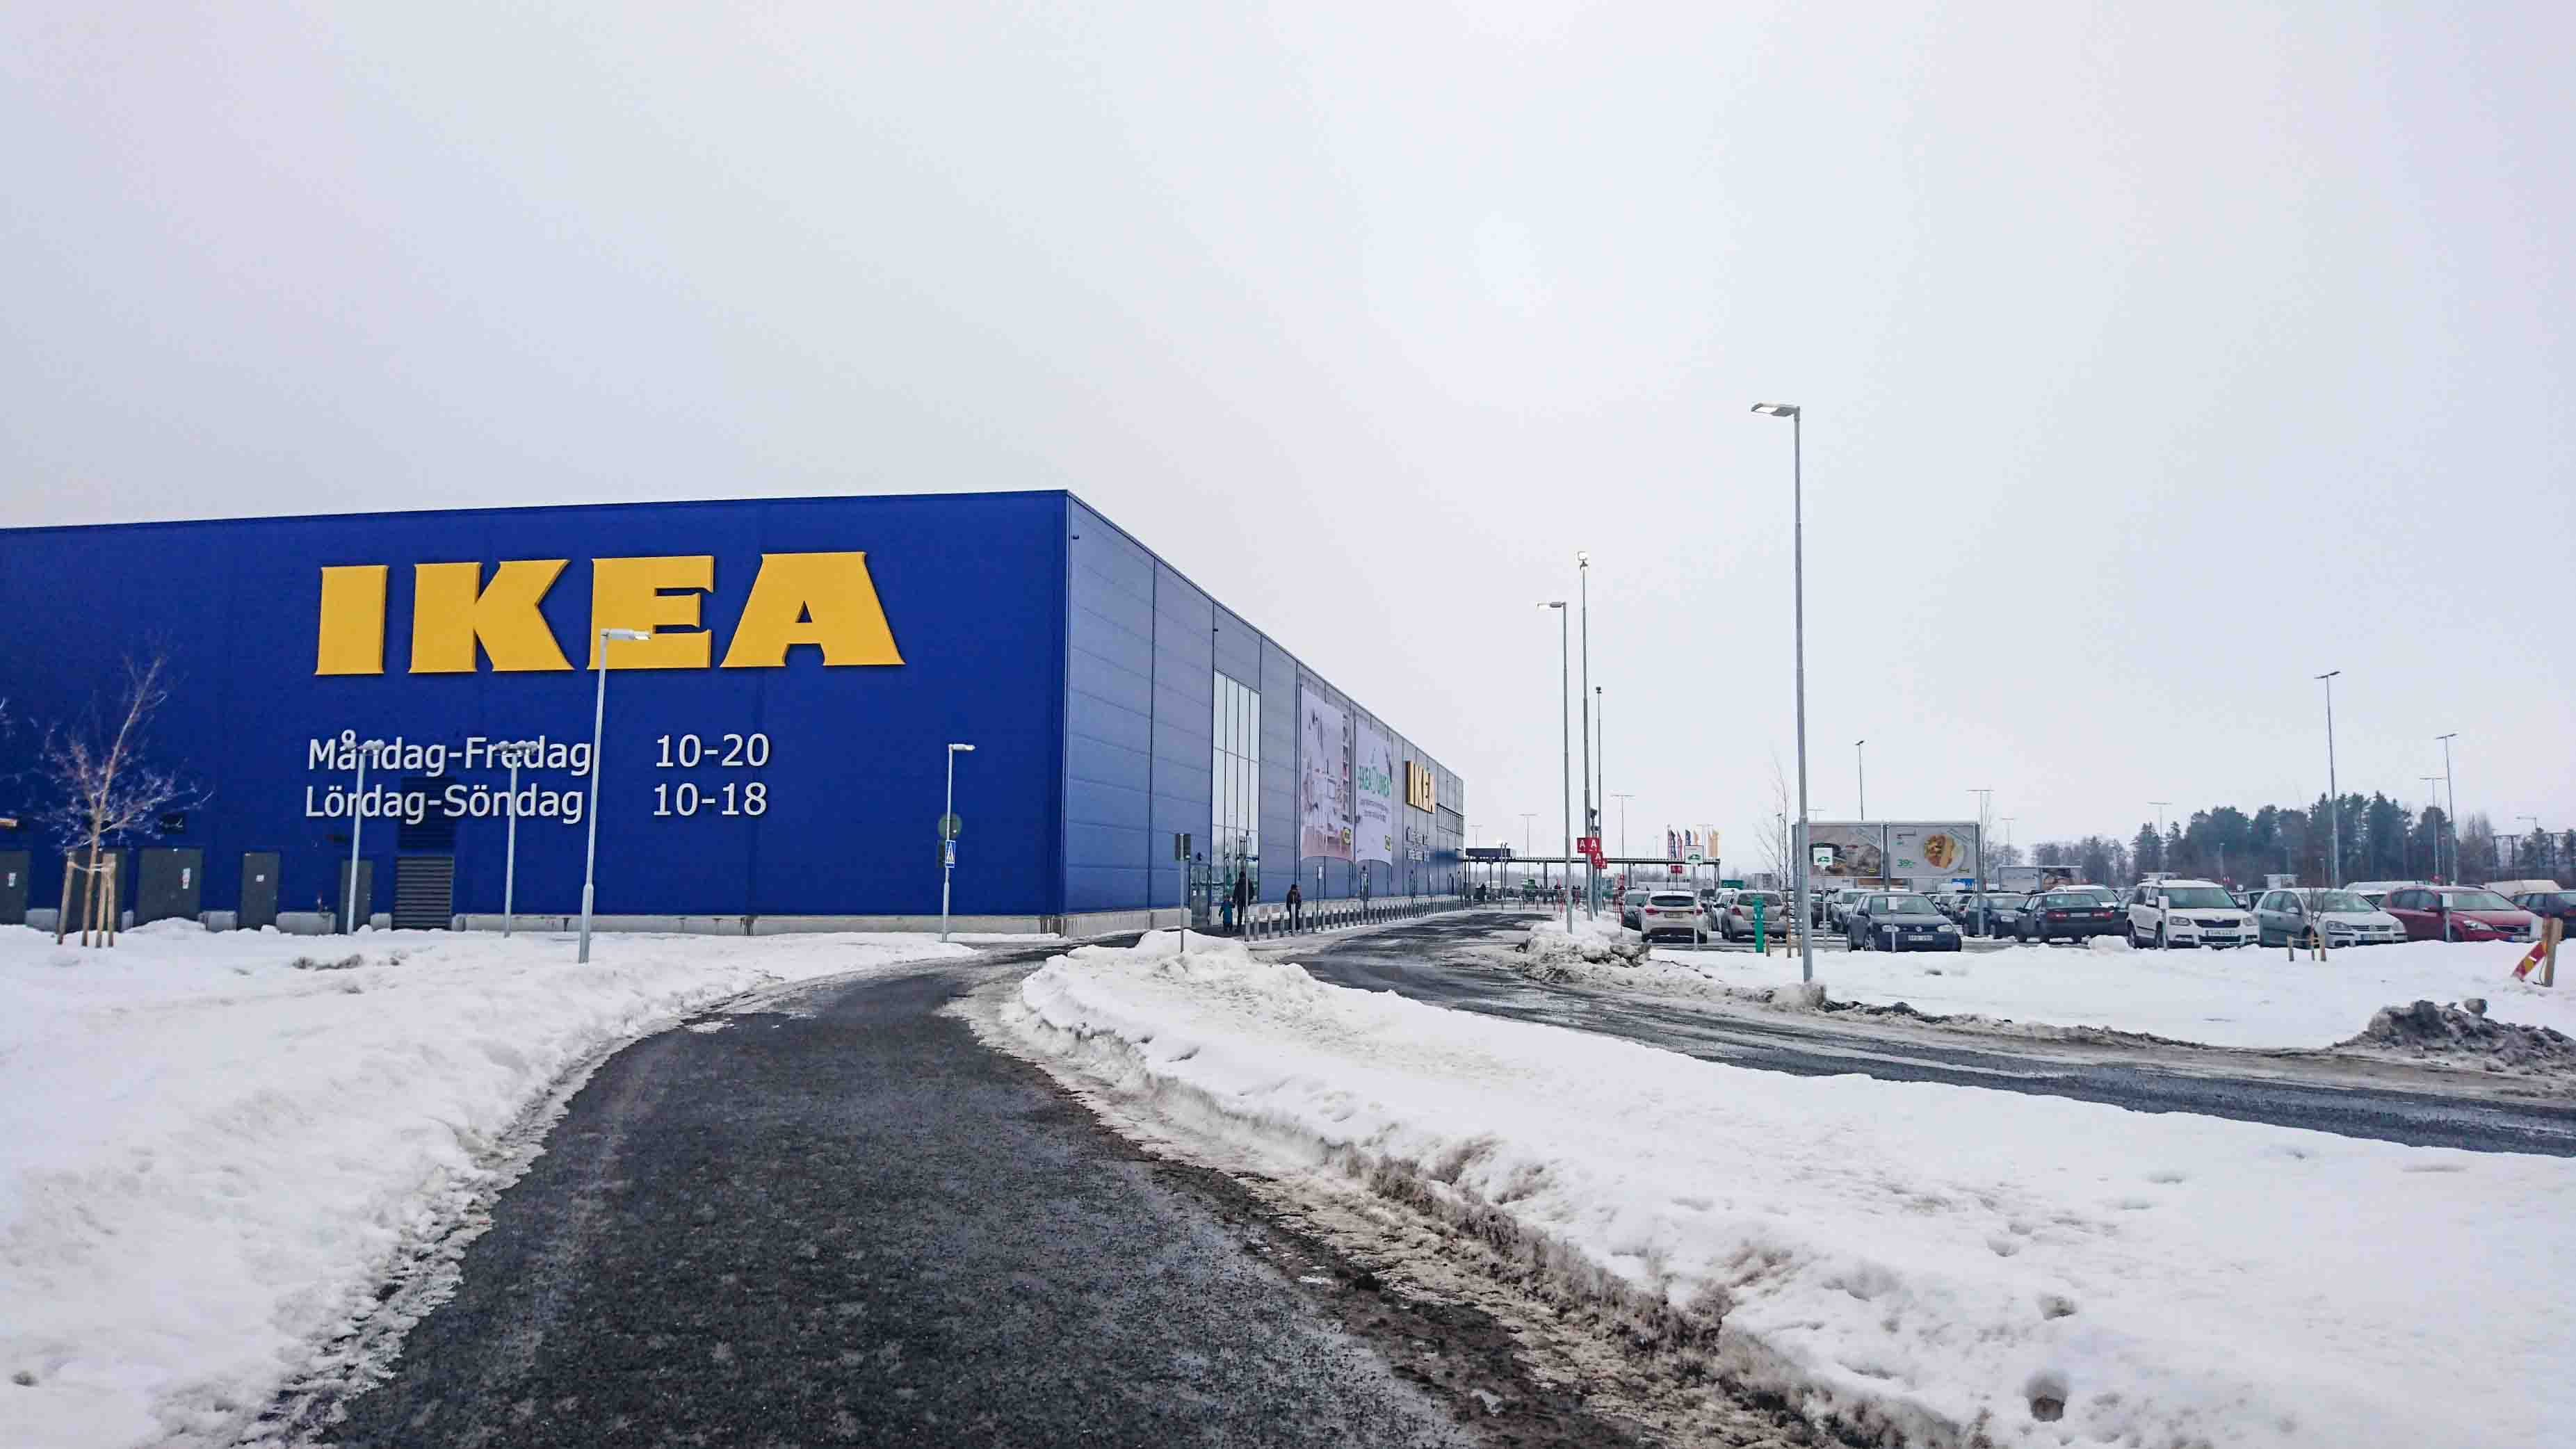 ikea of sweden